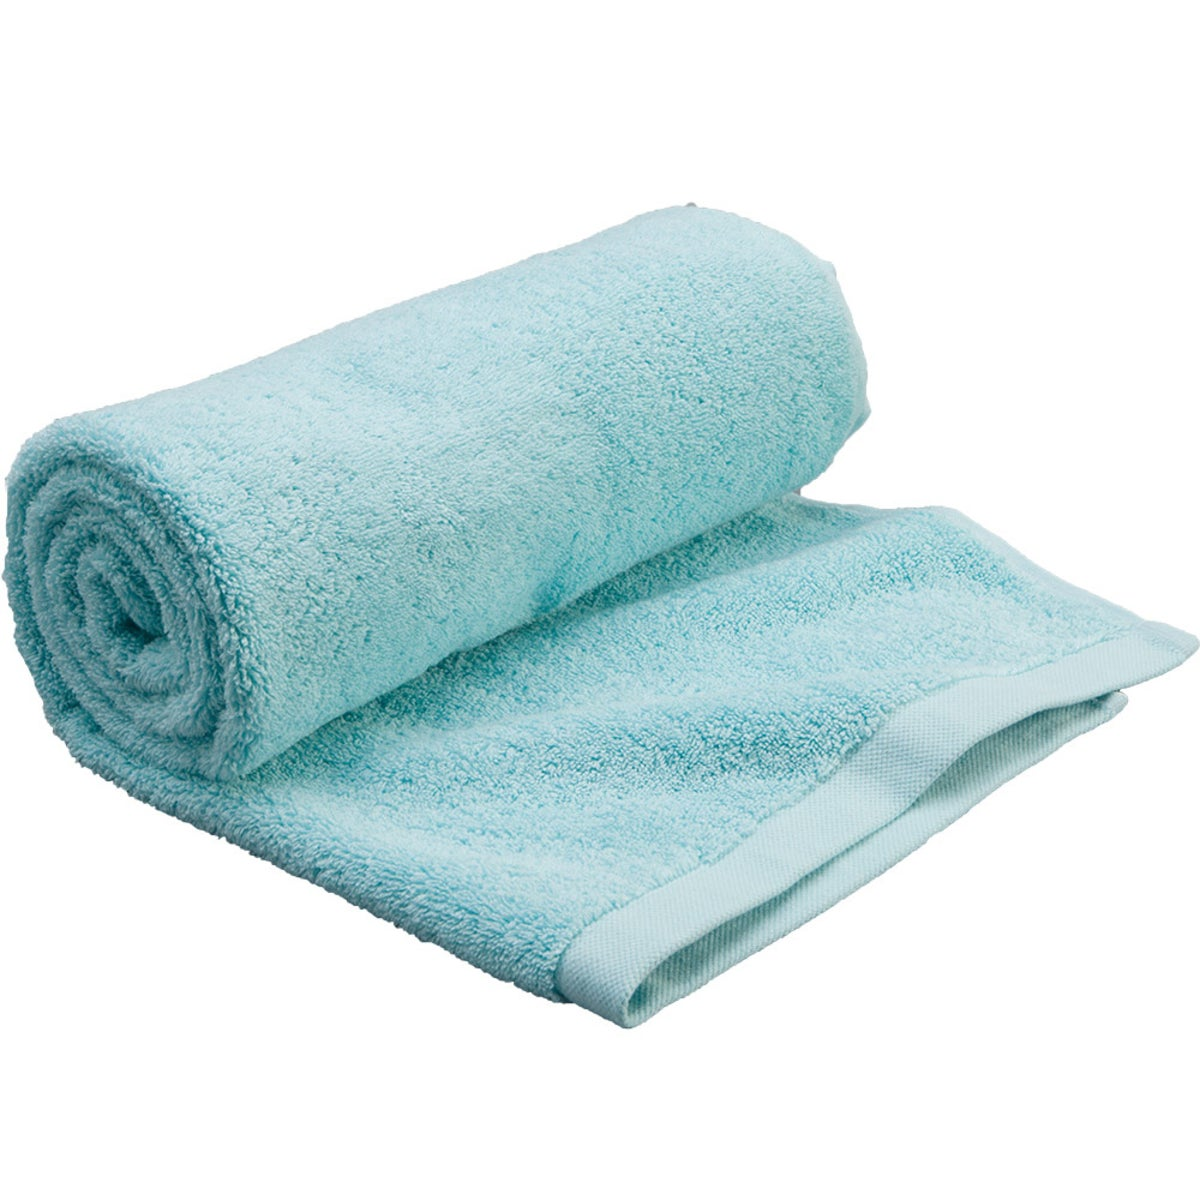 Premium Carded Cotton Bath Towel - Aqua